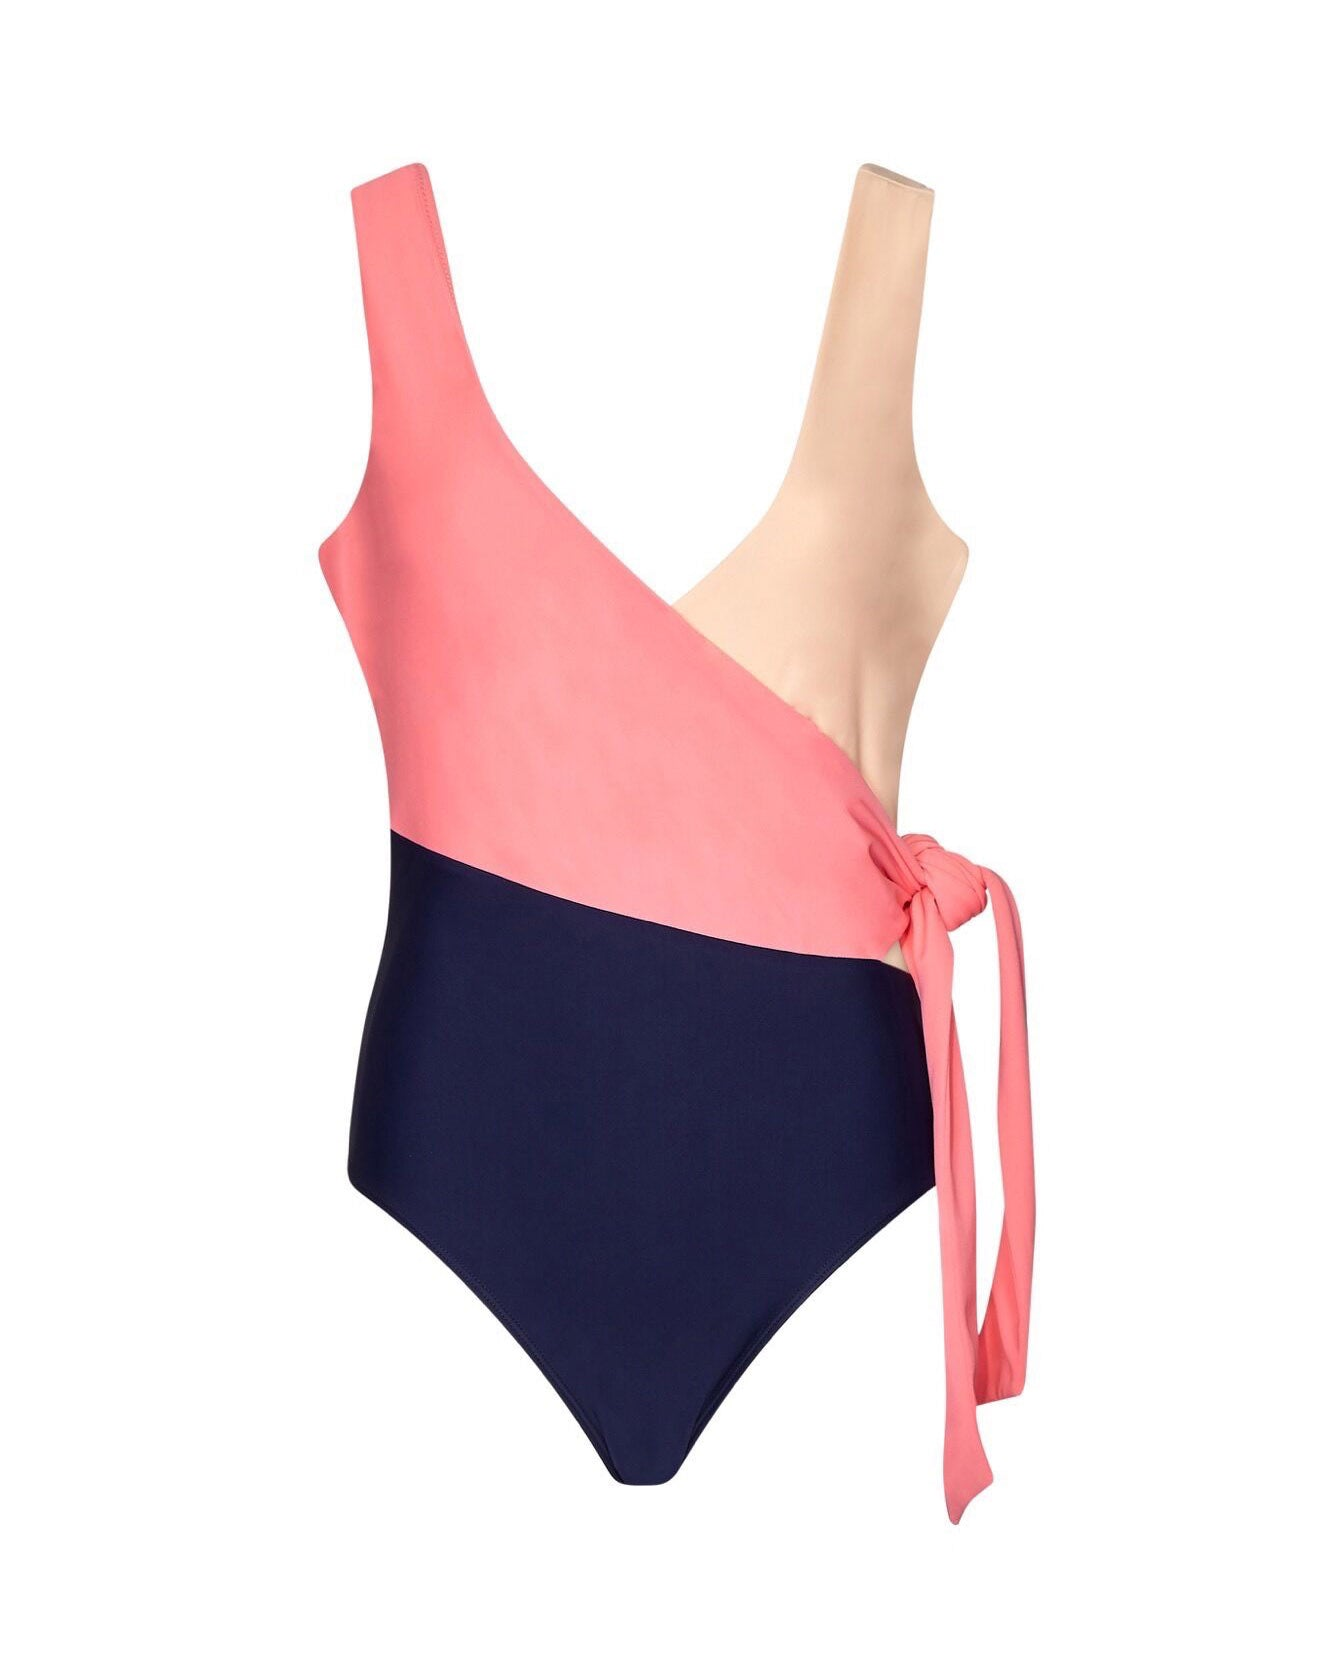 Copacabana Swimsuit in Rainbow